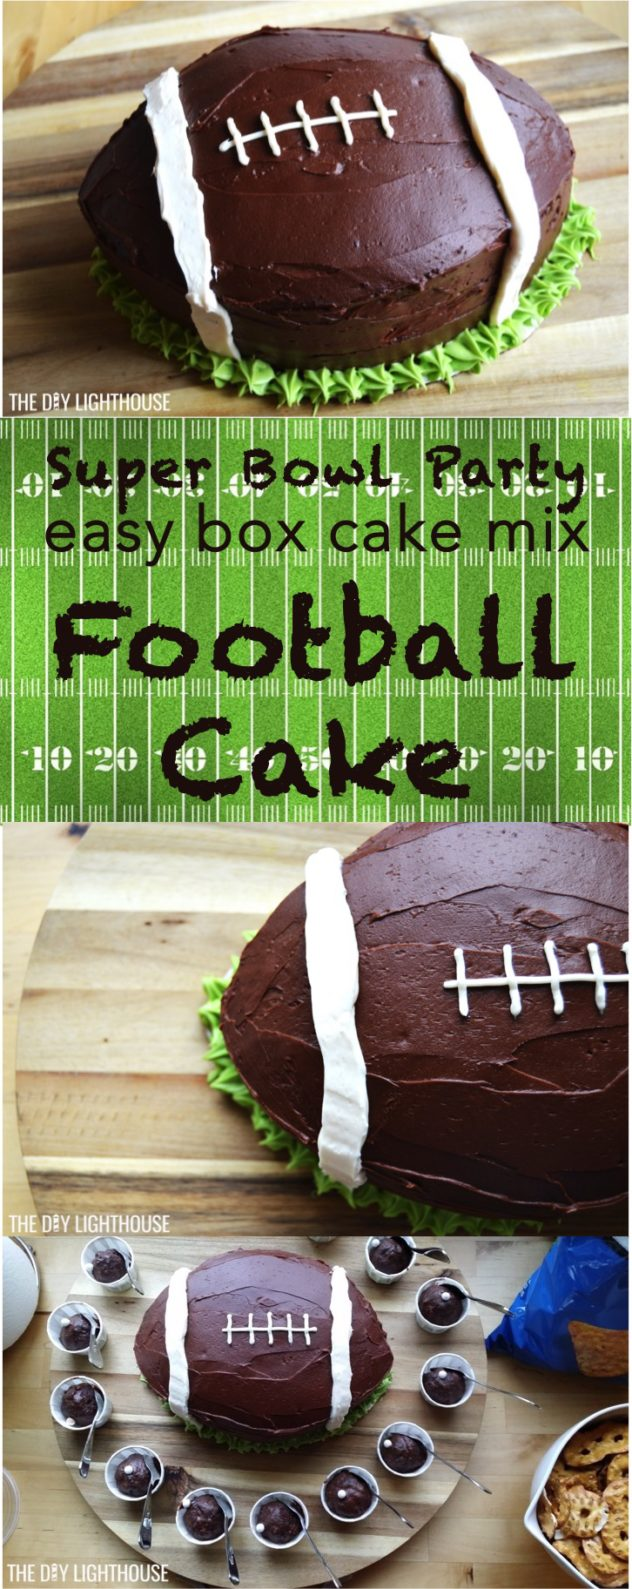 super-bowl-party-easy-box-cake-mix-football-cake